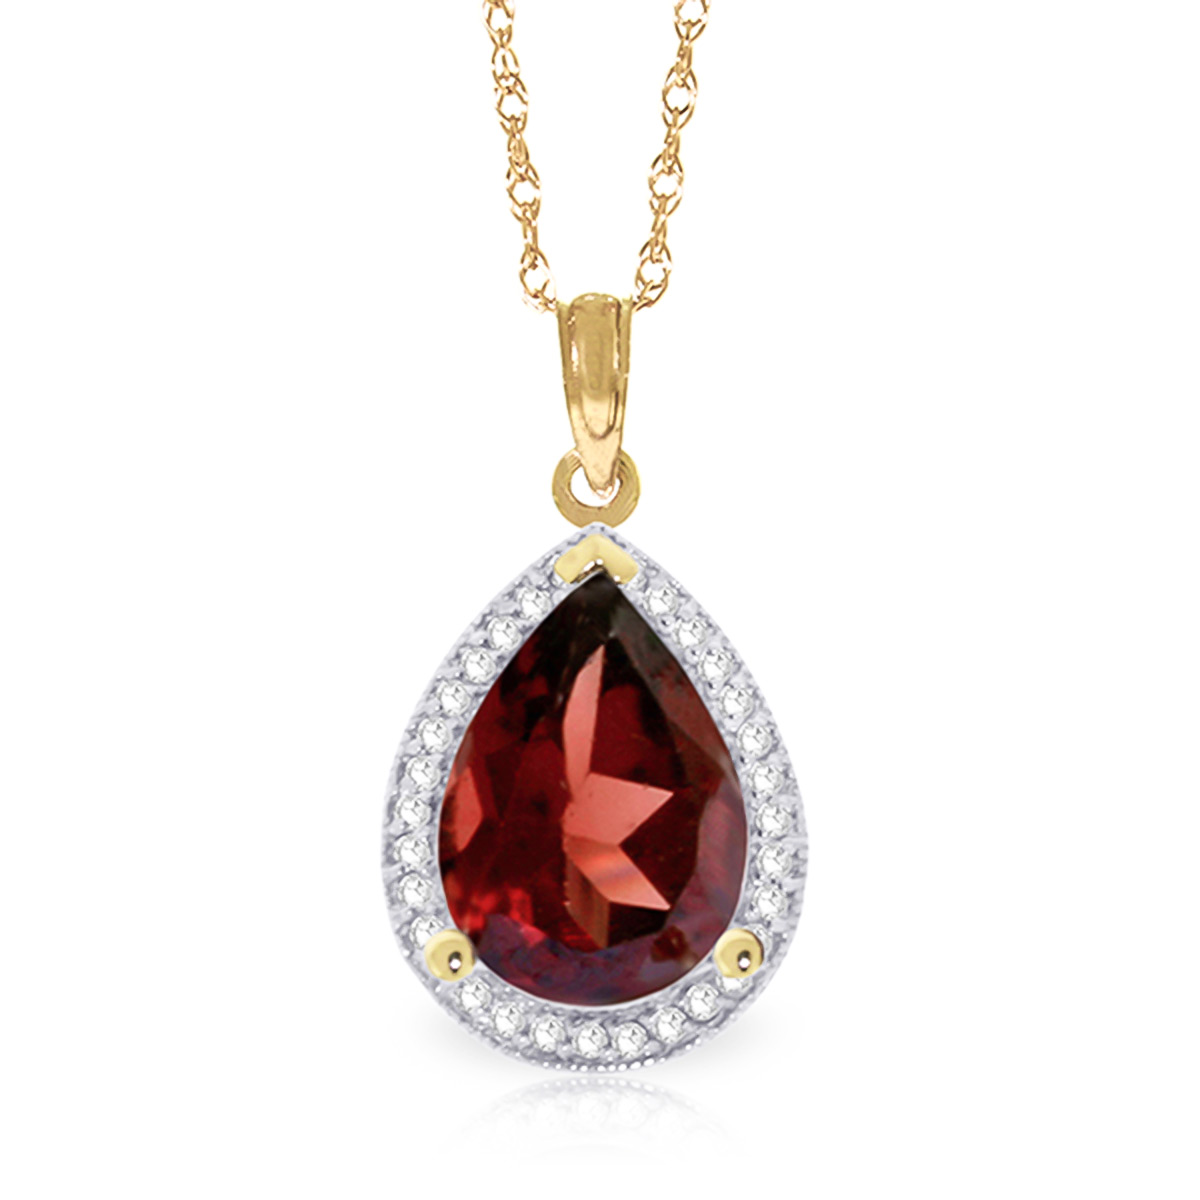 Garnet and Diamond Halo Pendant Necklace 3.9ct in 9ct Gold